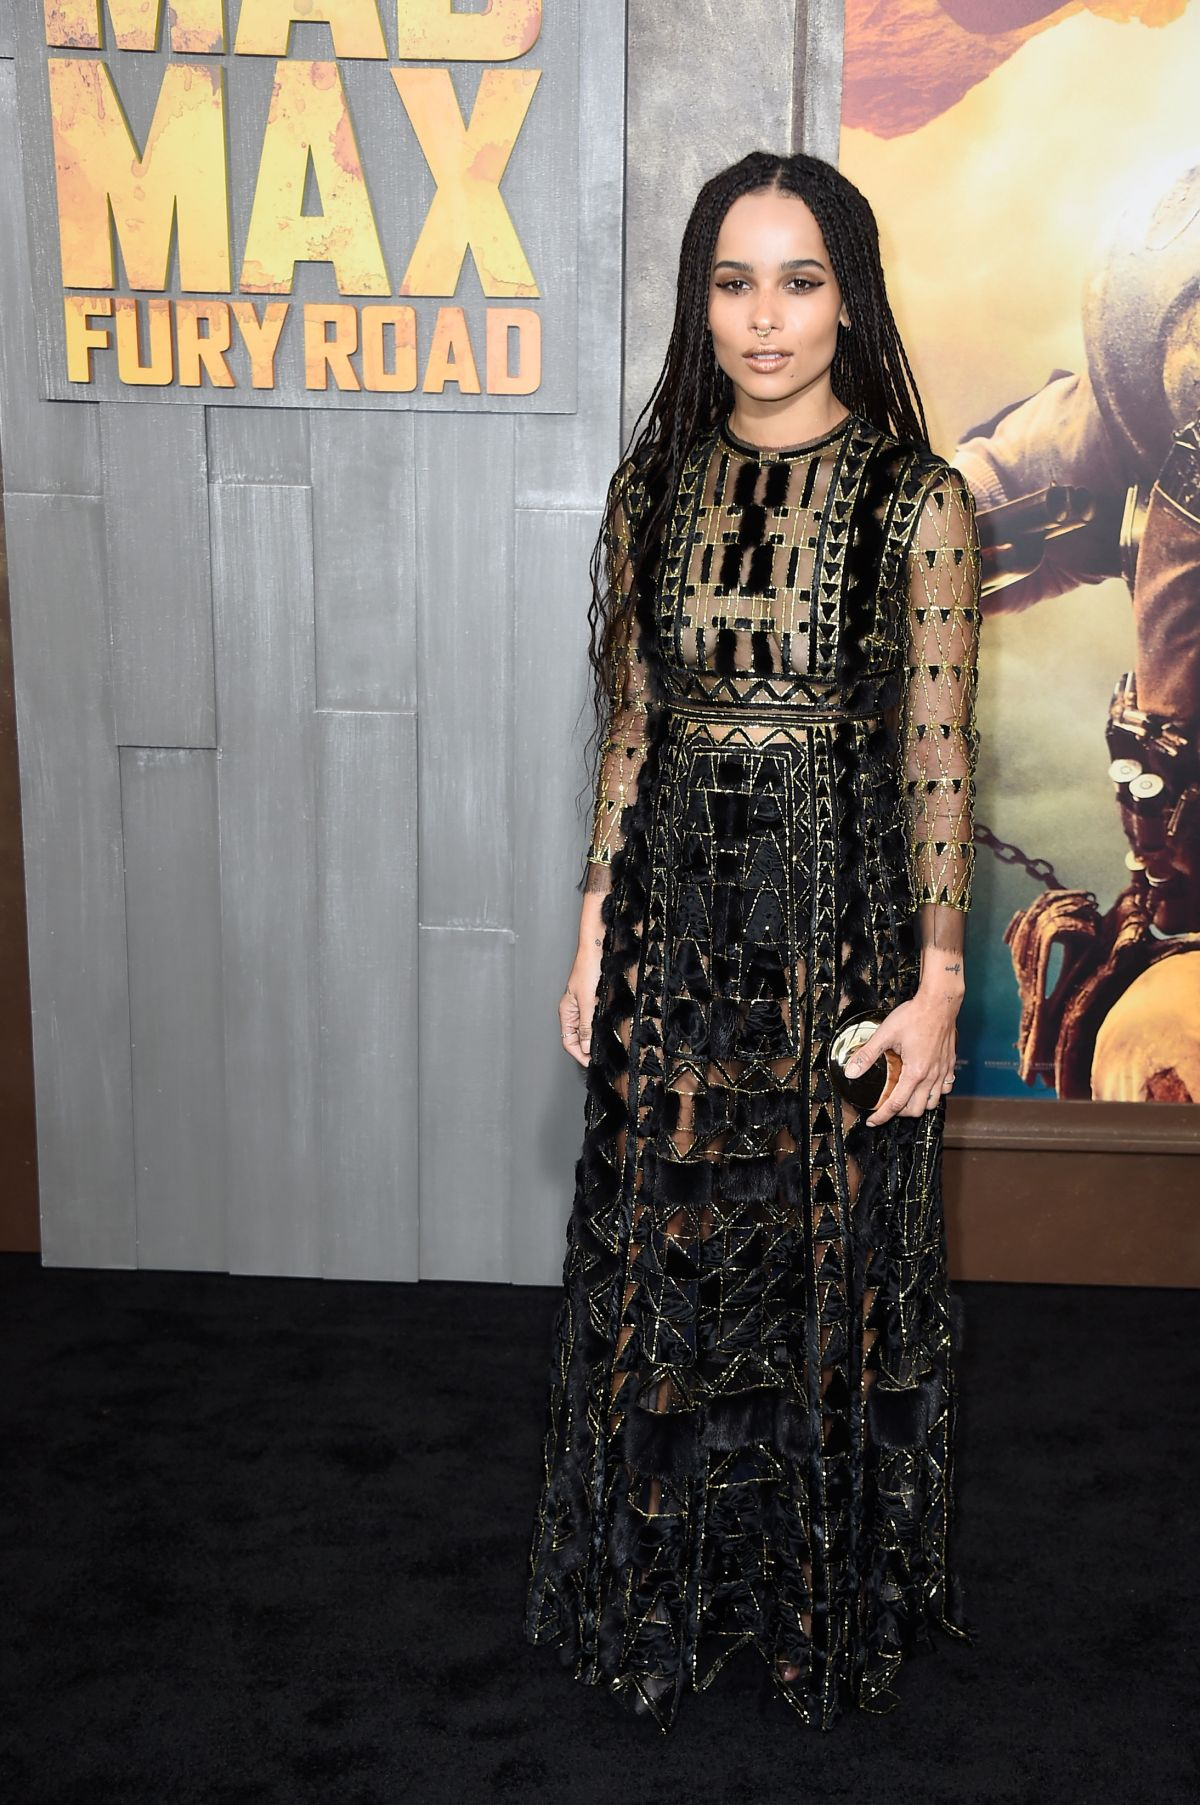 Zoe Kravitz Stepdad: ZOE KRAVITZ At Mad Max: Fury Road Premiere In Hollywood